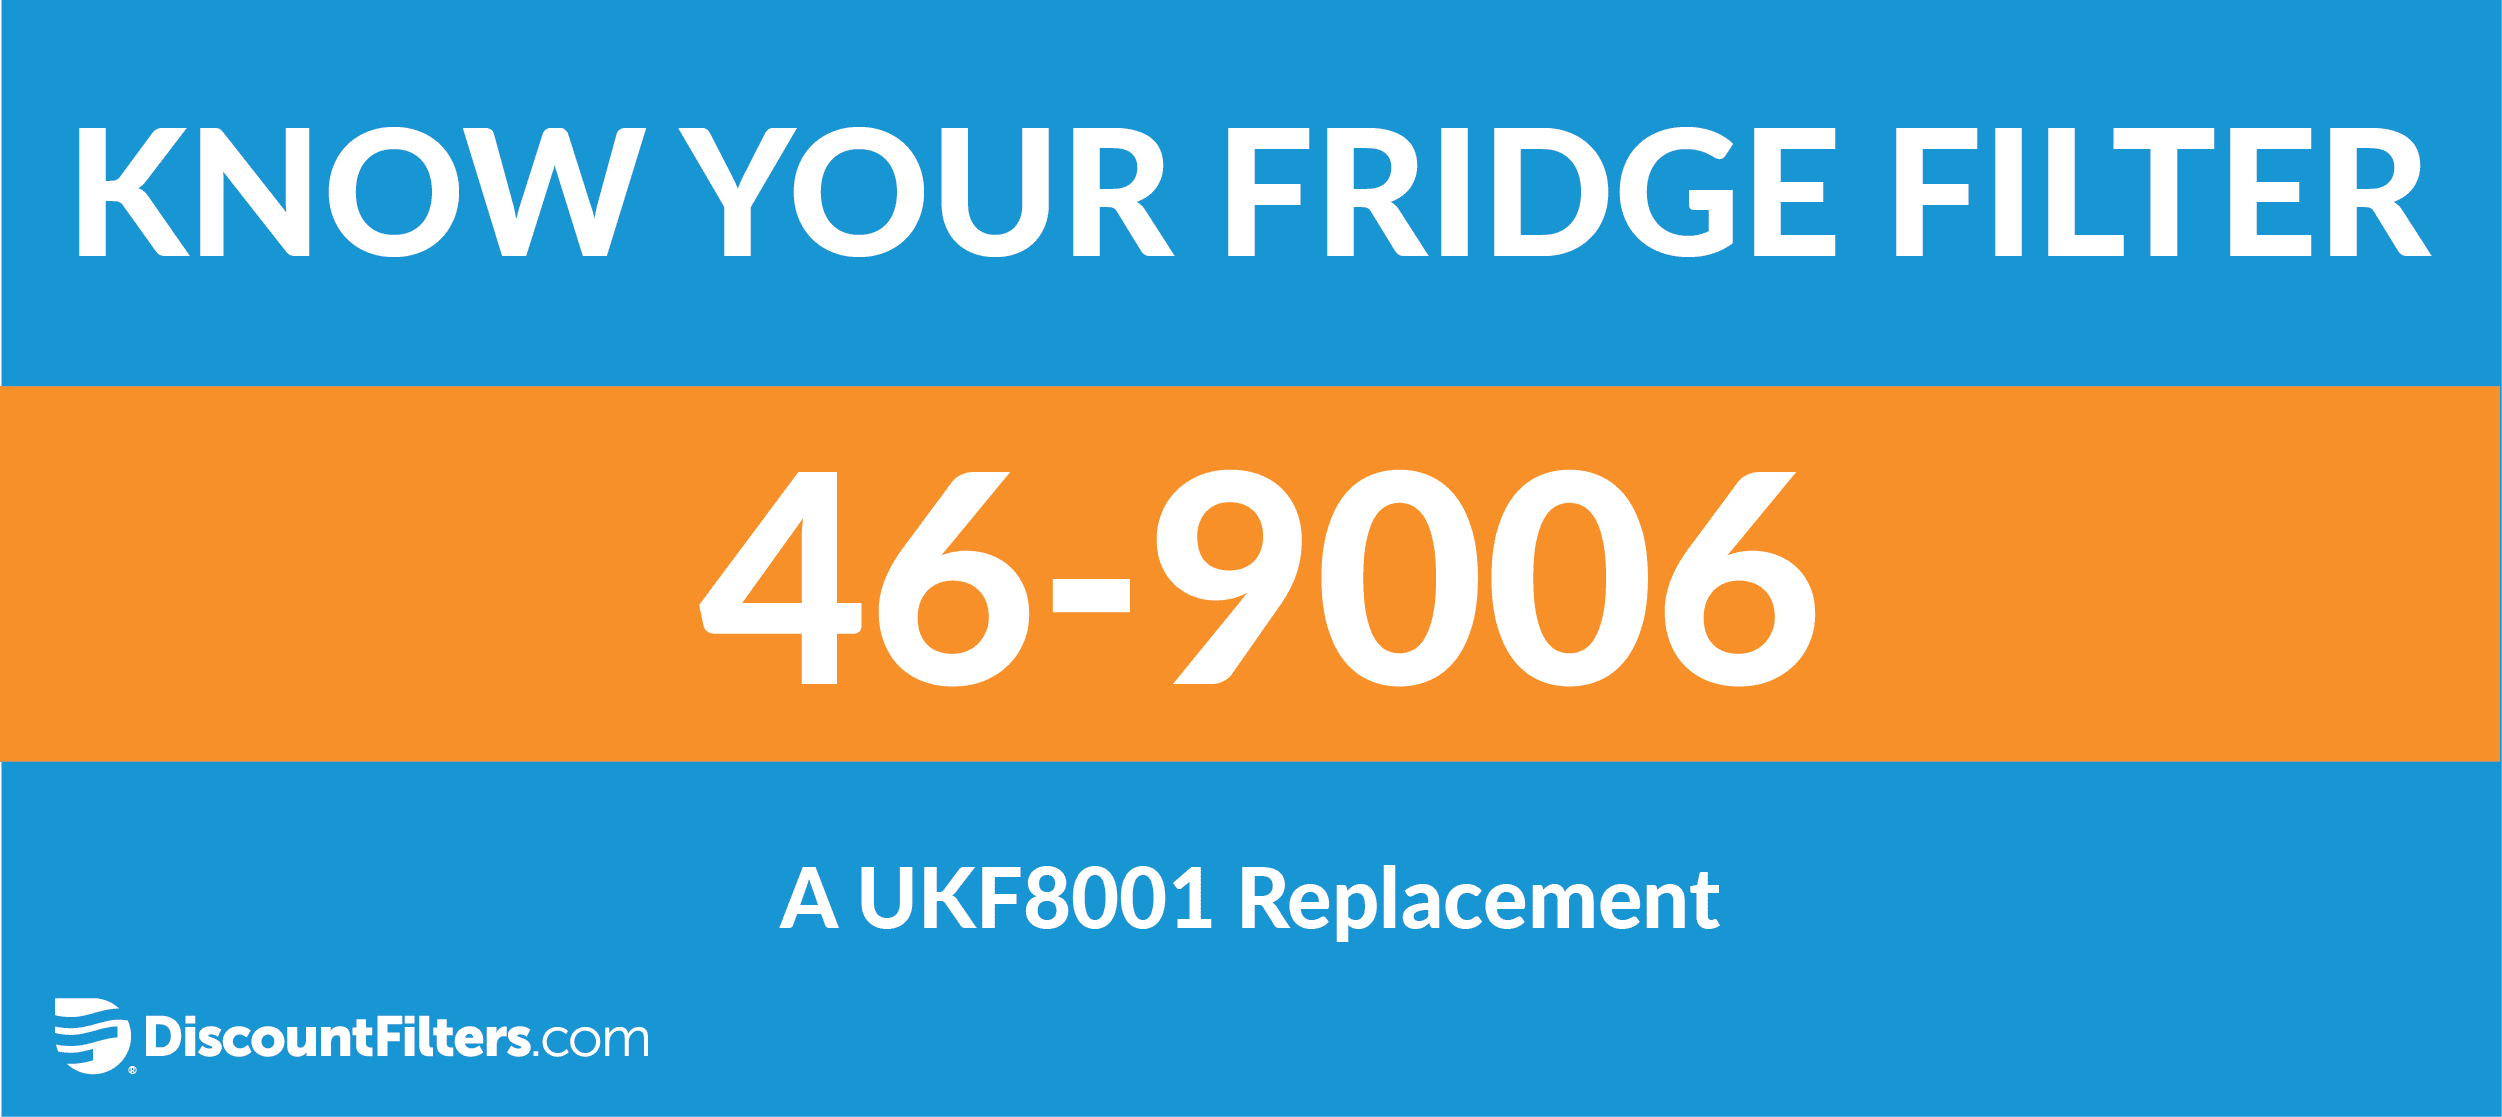 know your fridge filter 46-9006 ukf8001 replacement filter